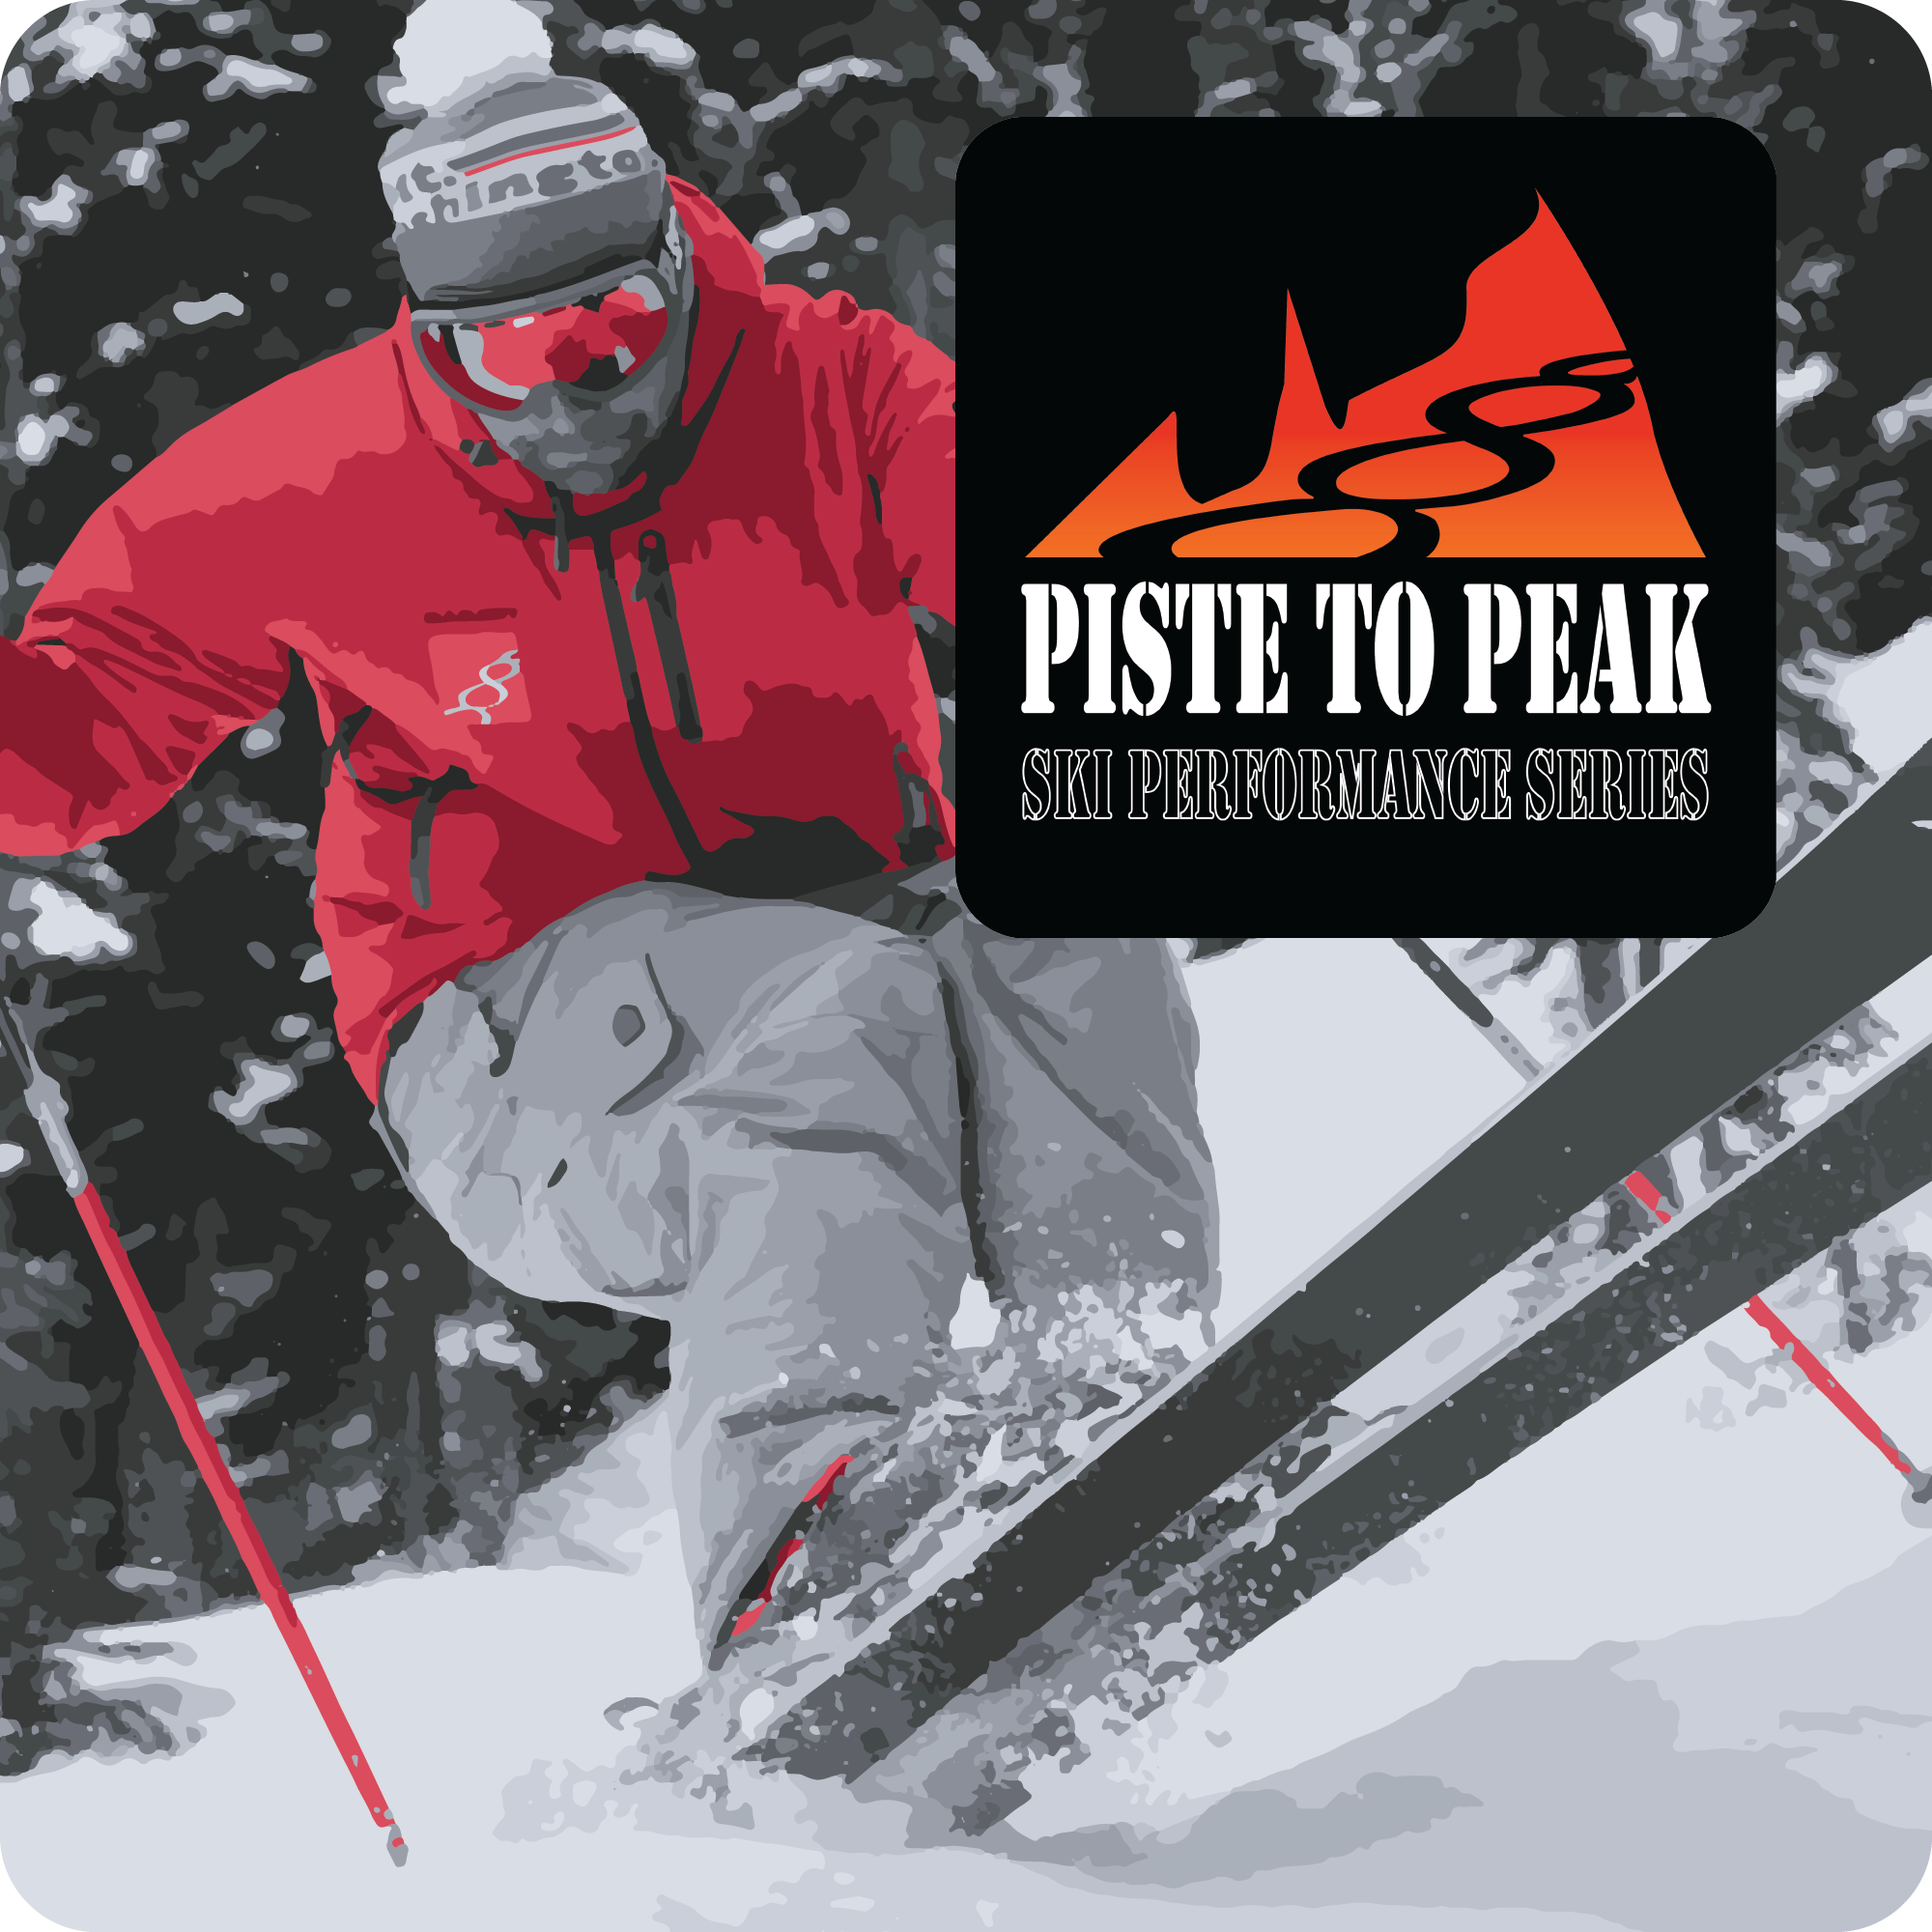 P2P2 - Piste to Peak Volume #2 - Spring Skiing... The Lost Art of Slushy Bumps, Icy Bumps & Everything in Between